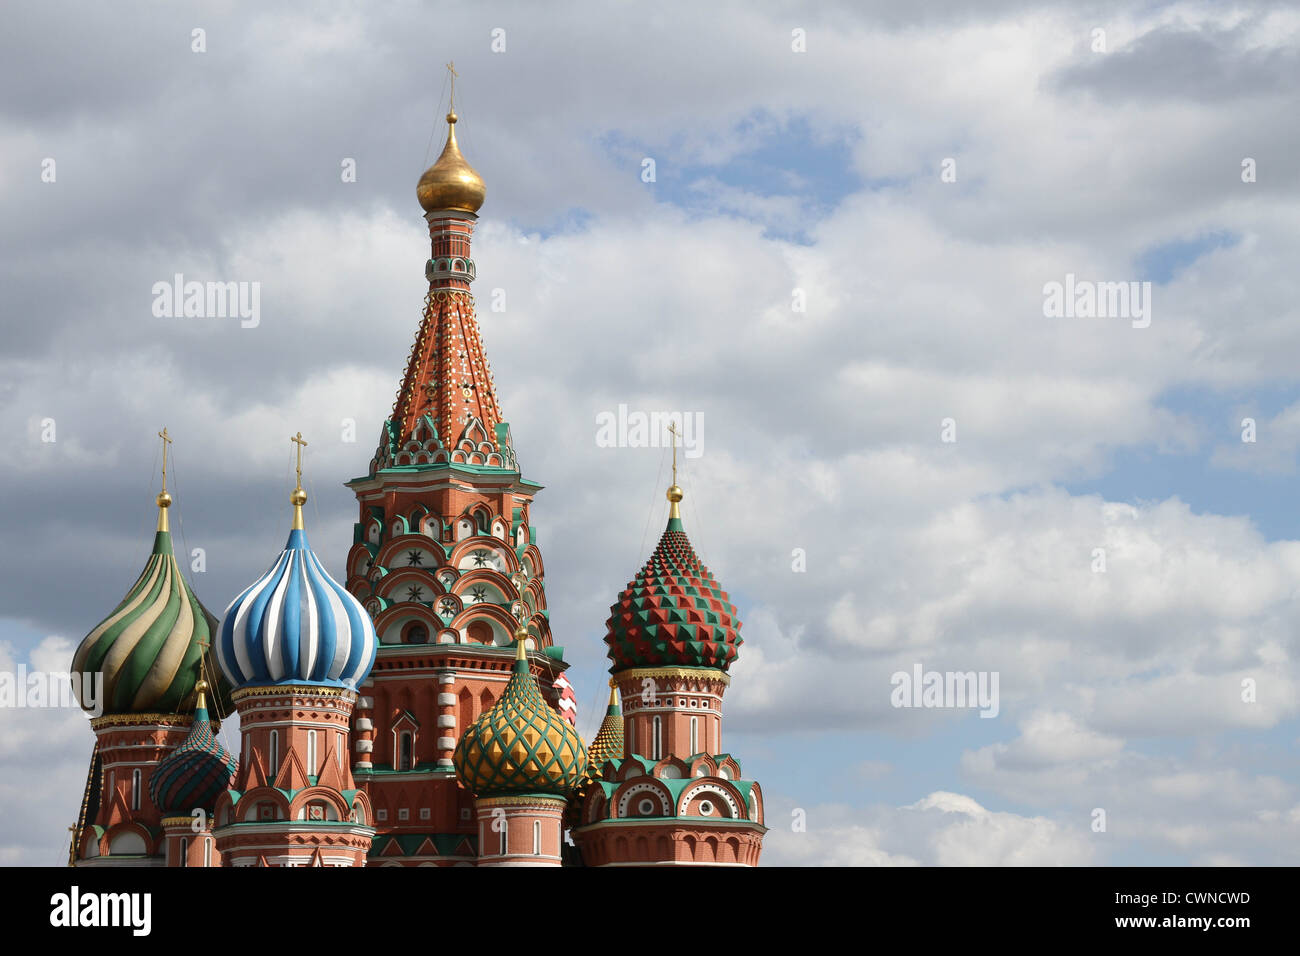 famous landmark in Moscow, Russia - Stock Image